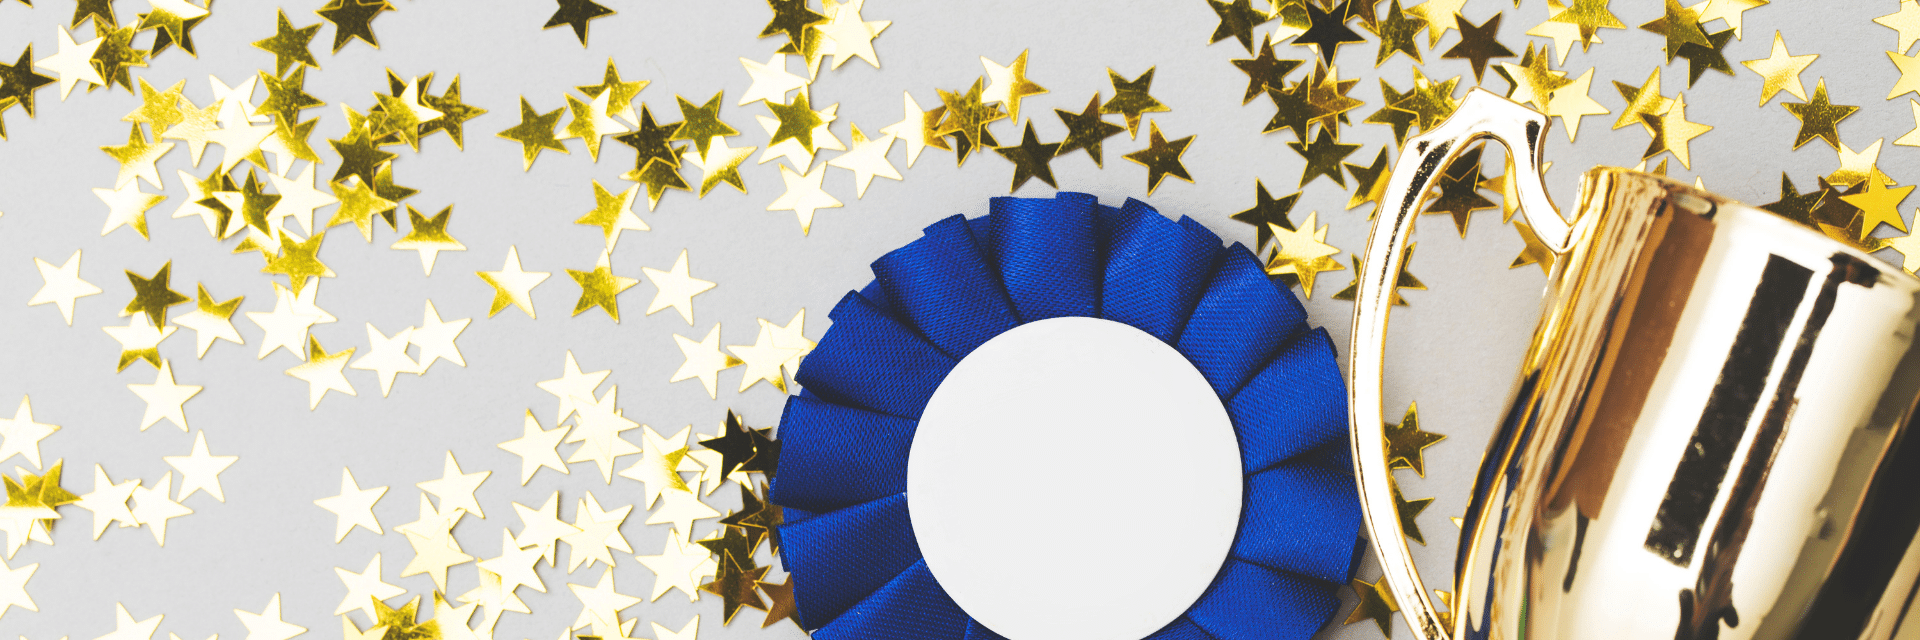 trophy and rosette with gold stars sprinkled around